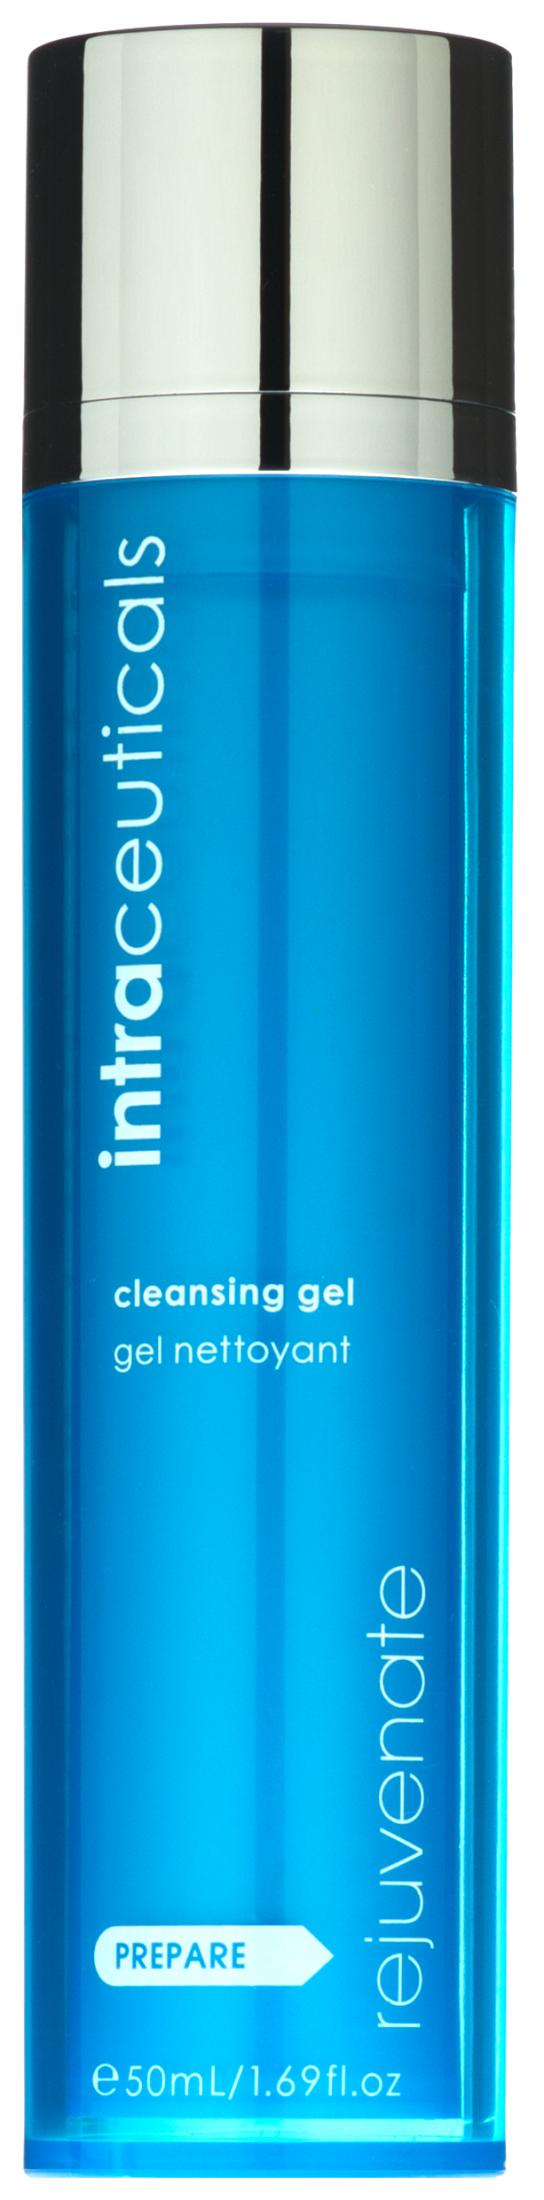 Intraceuticals Rejuvenate Cleansing Gel 50ml in box